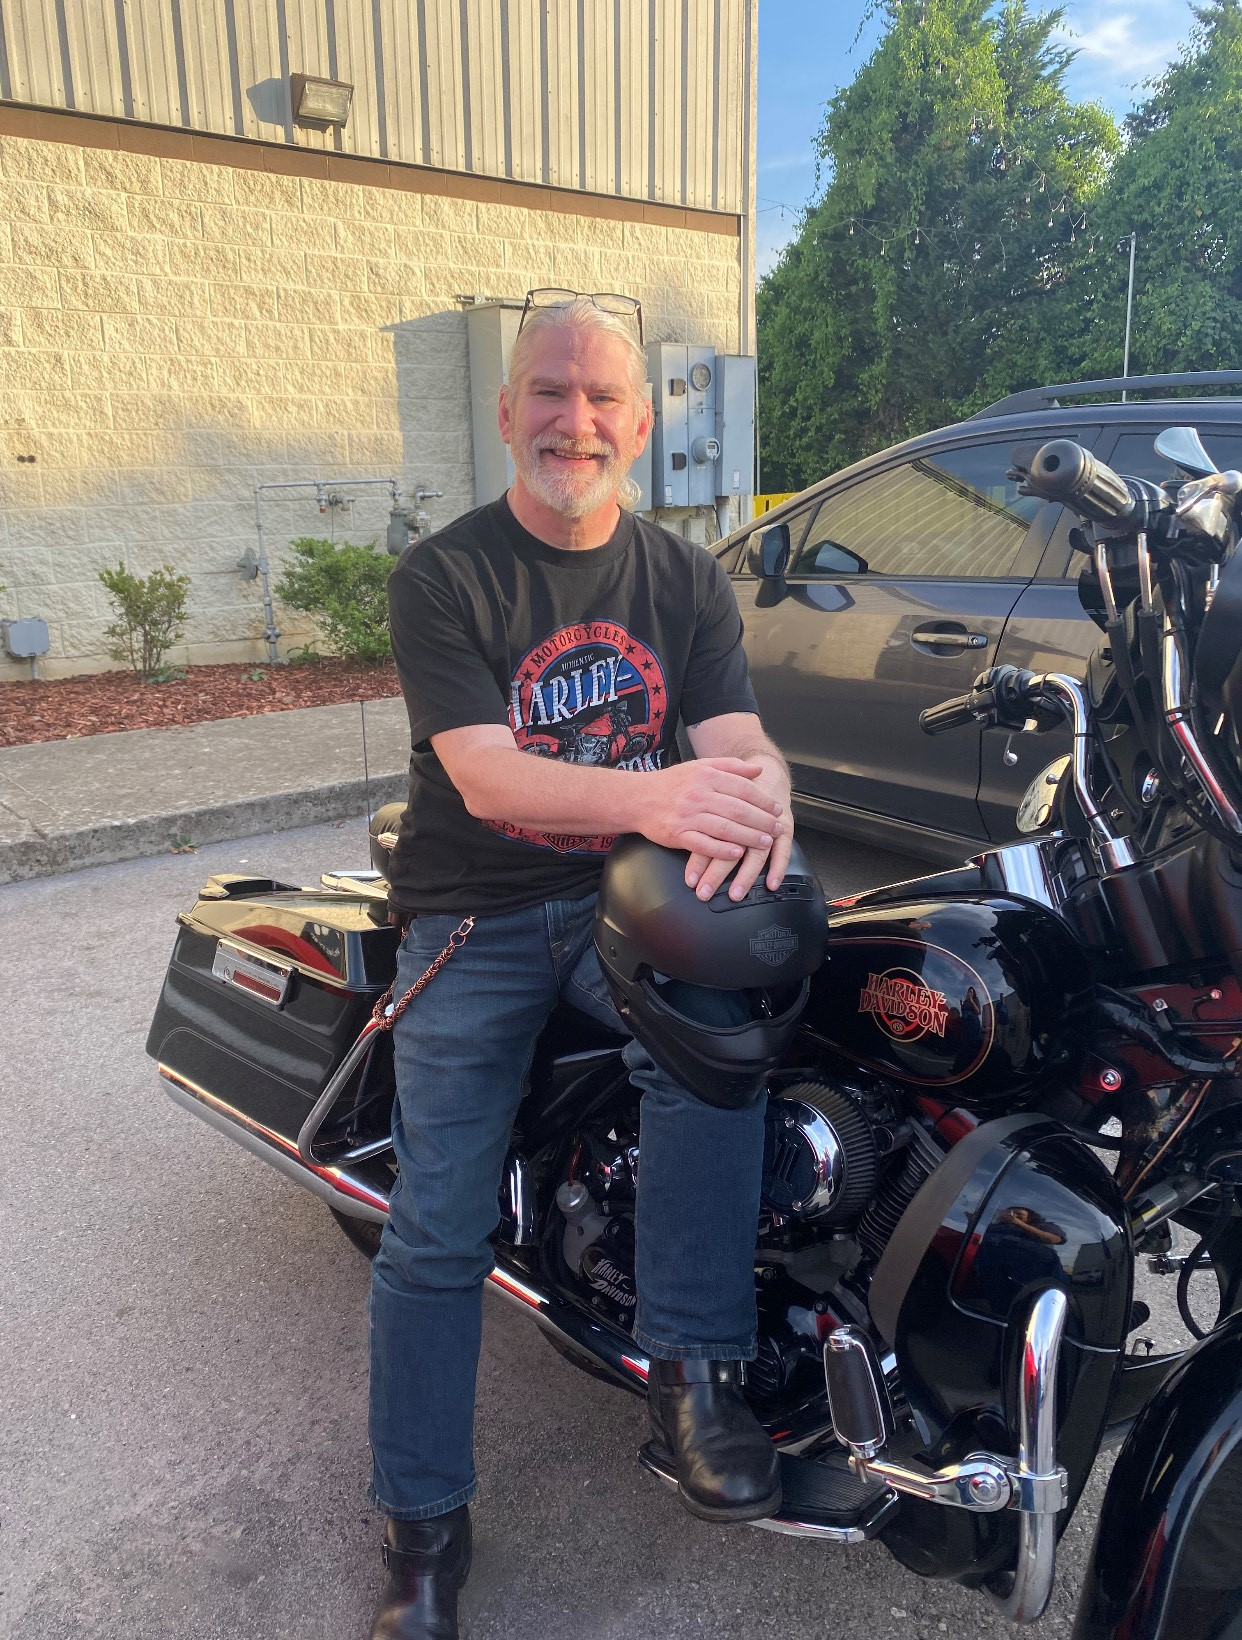 Michael Ensor on his motorcycle